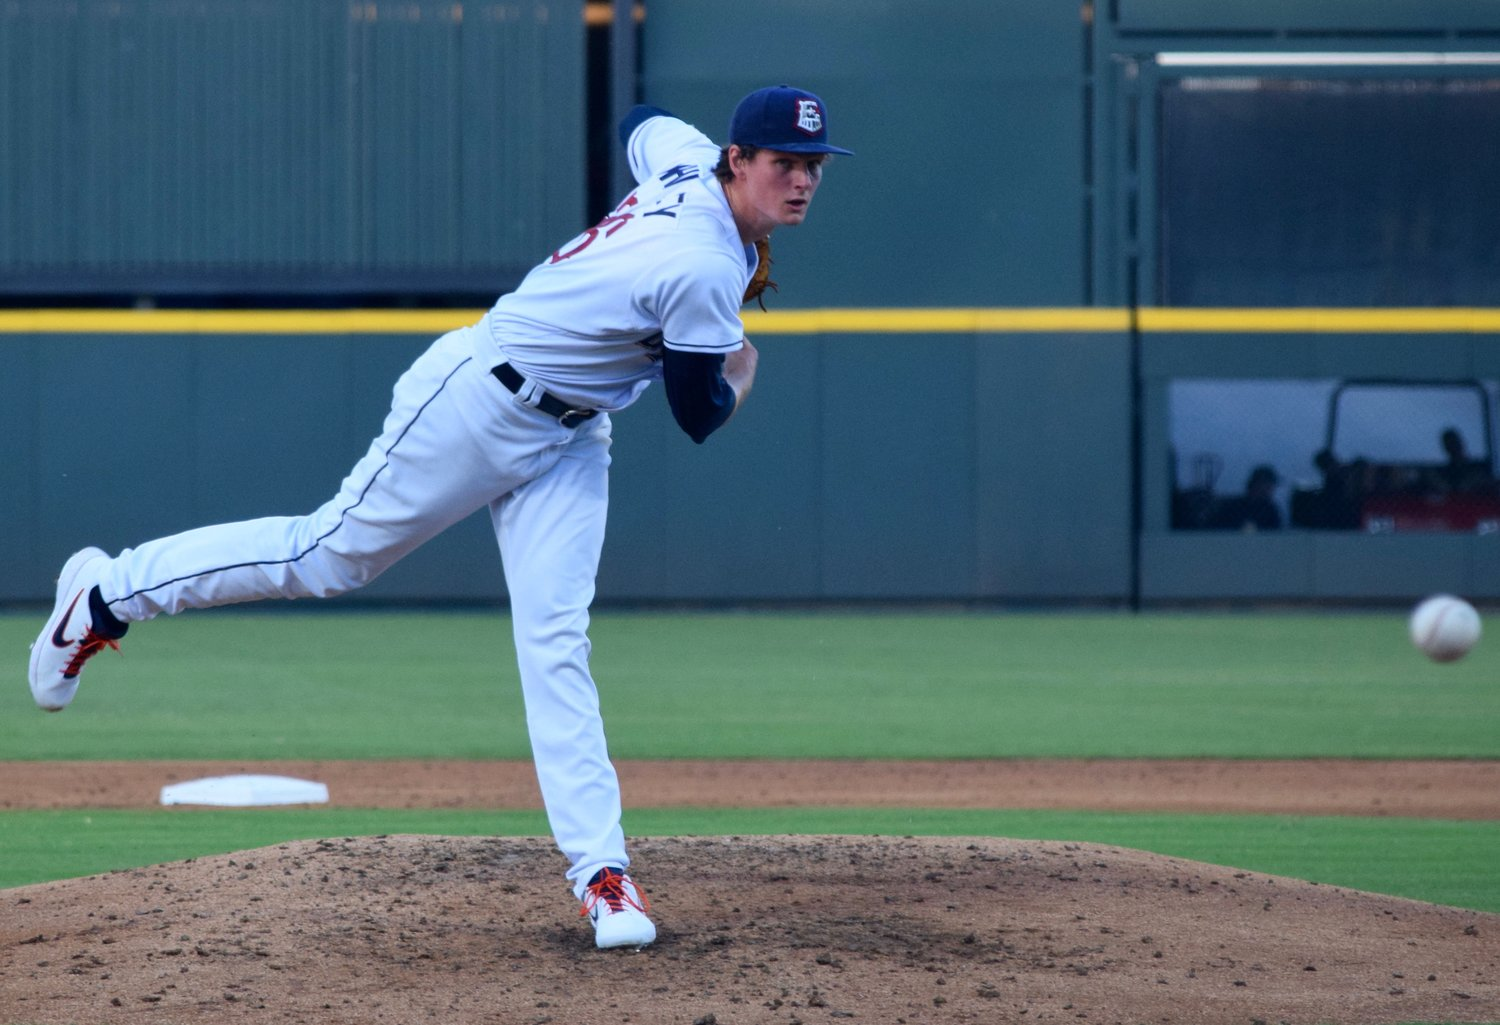 Top pitching prospect Forrest Whitley allowed seven runs on eight hits and lost both games his started, his first Triple-A appearances and first with the Round Rock Express.